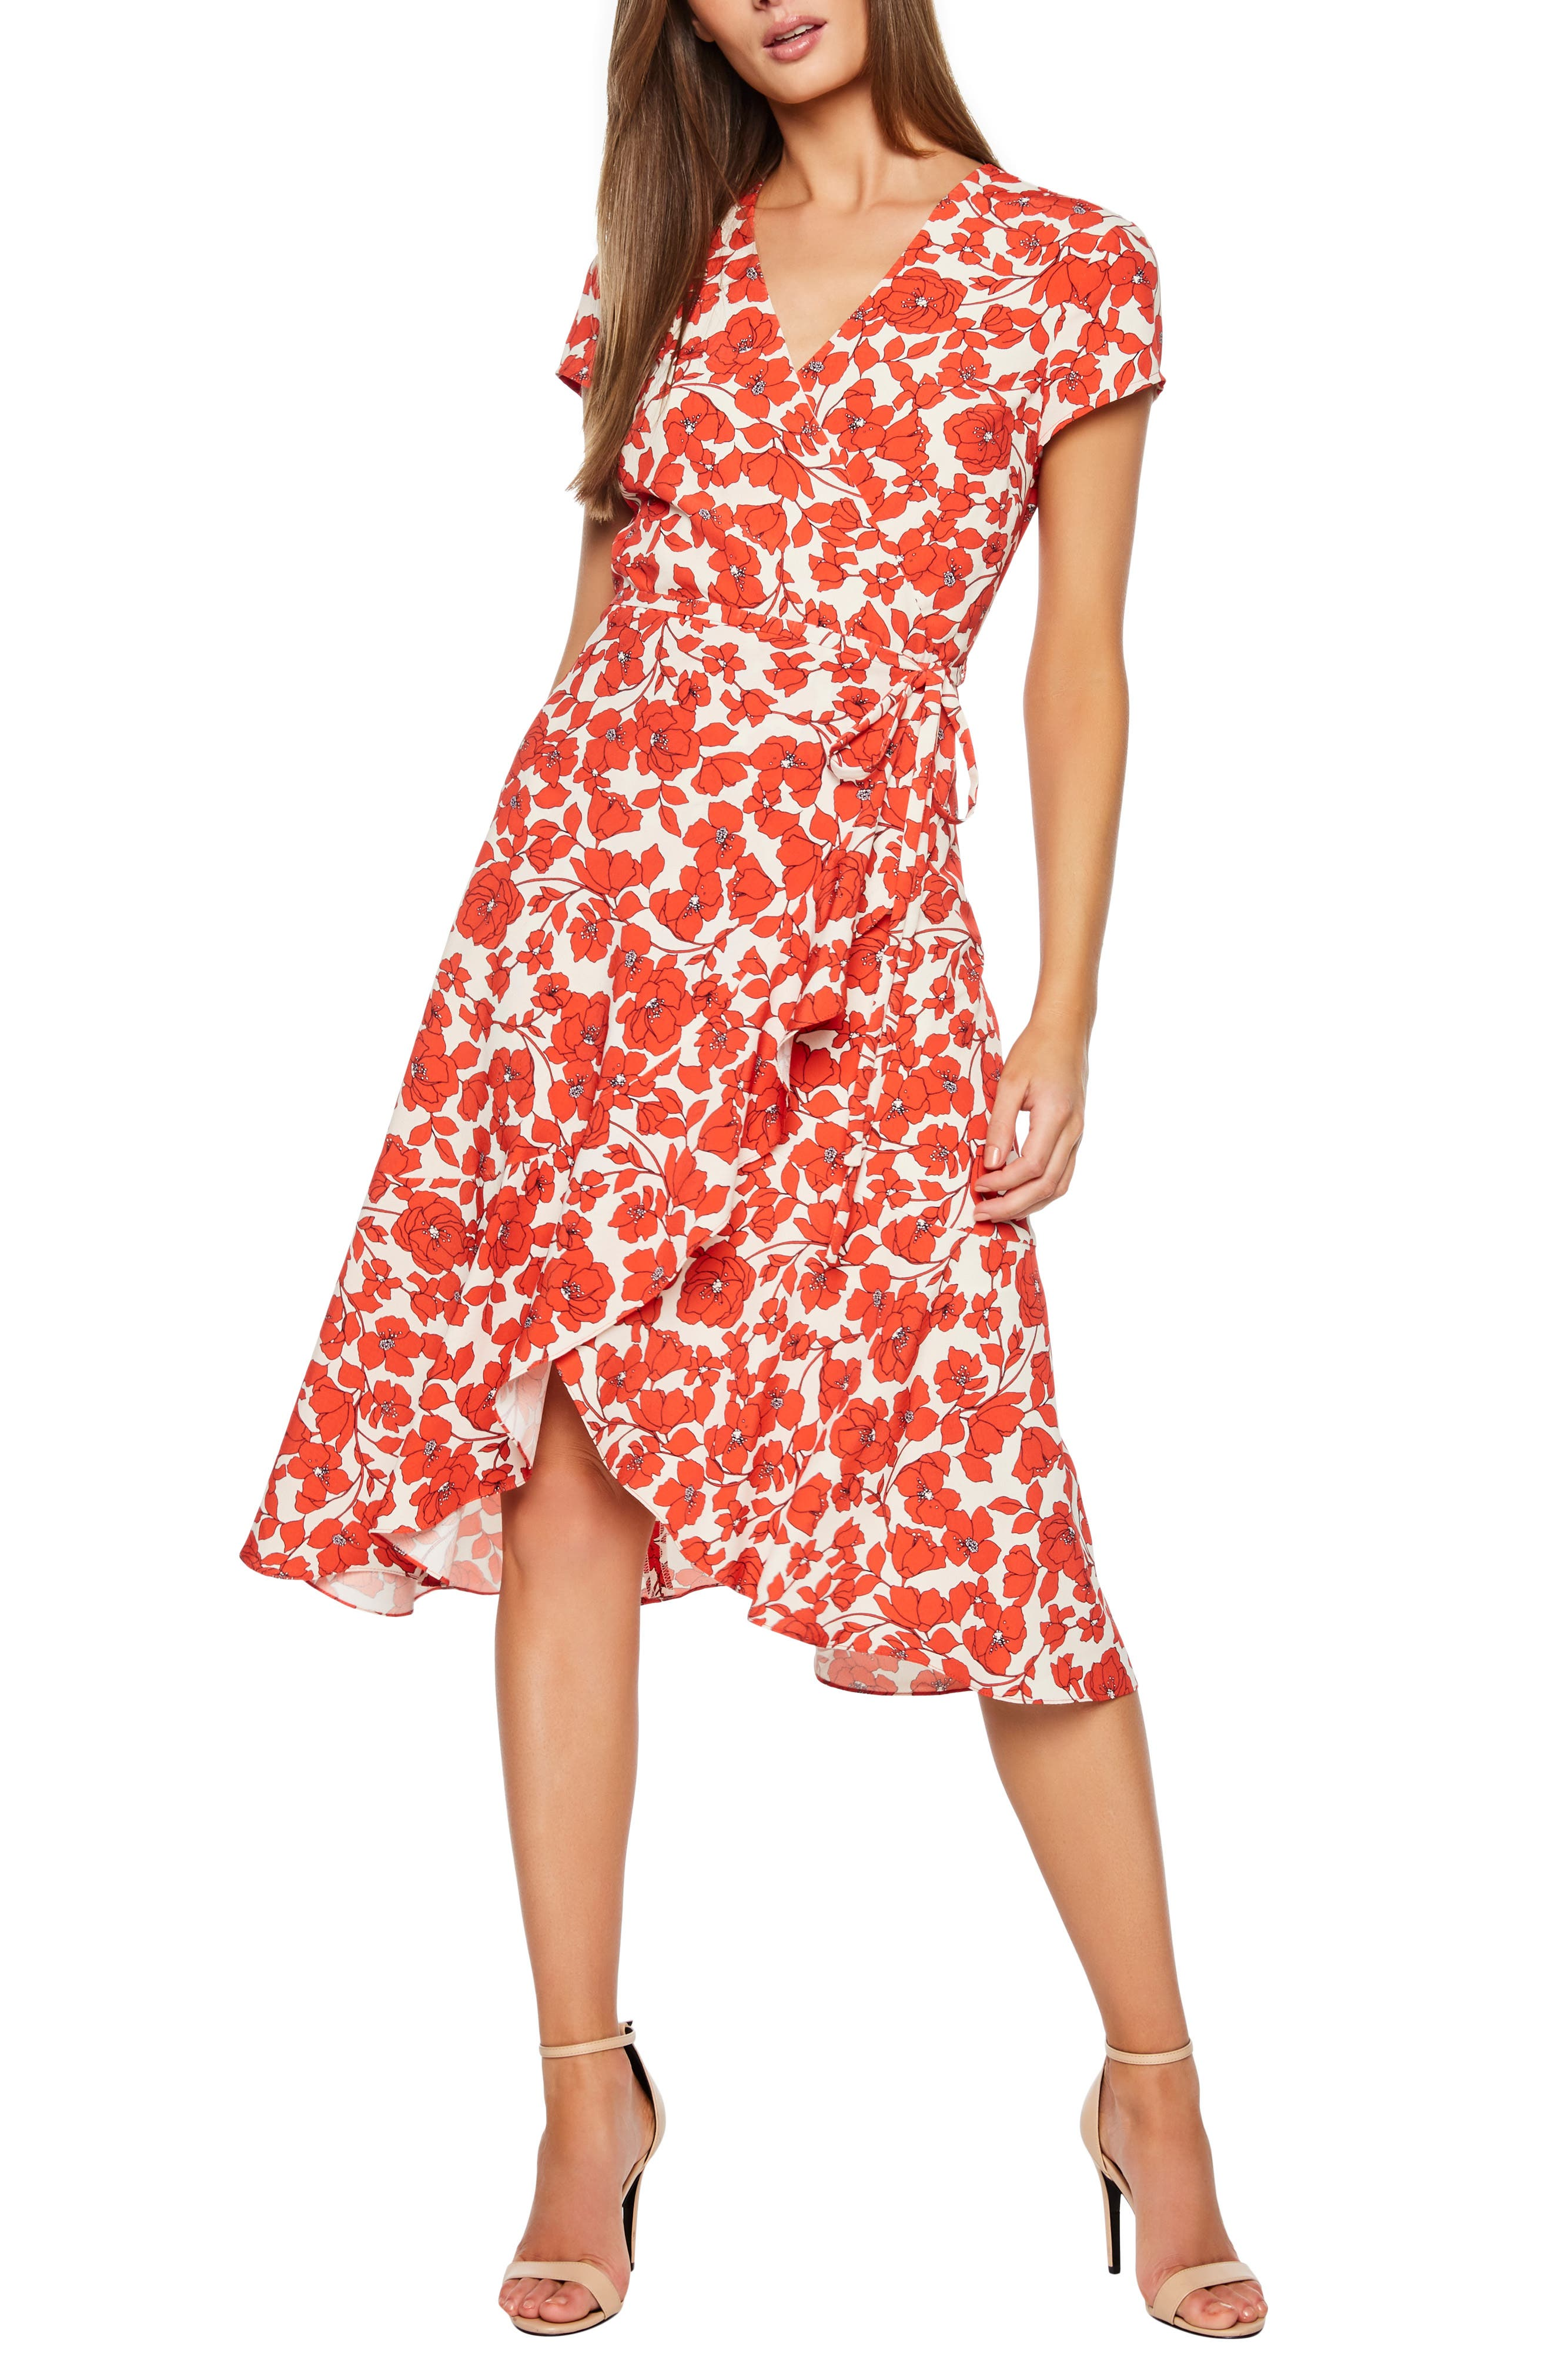 BARDOT,                             Fiesta Floral Midi Dress,                             Main thumbnail 1, color,                             ORANGE FLORAL